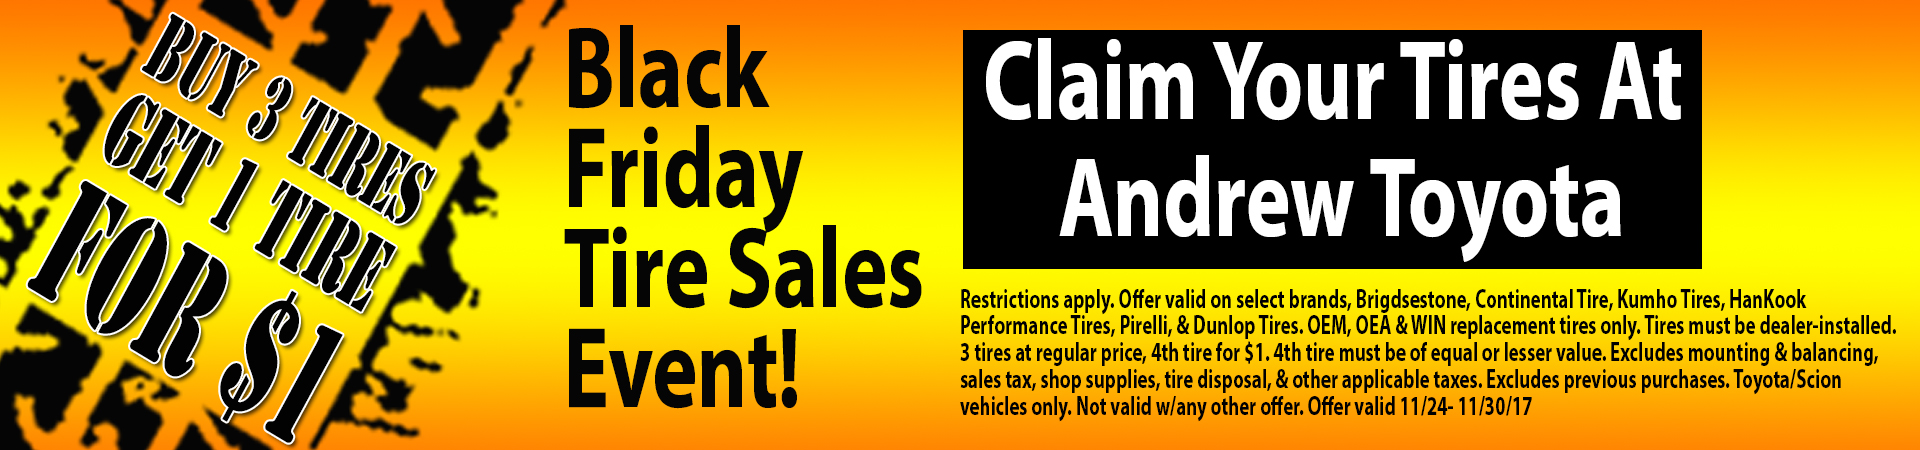 Back by popular demand, the Black Friday Tires Sales Event is here!